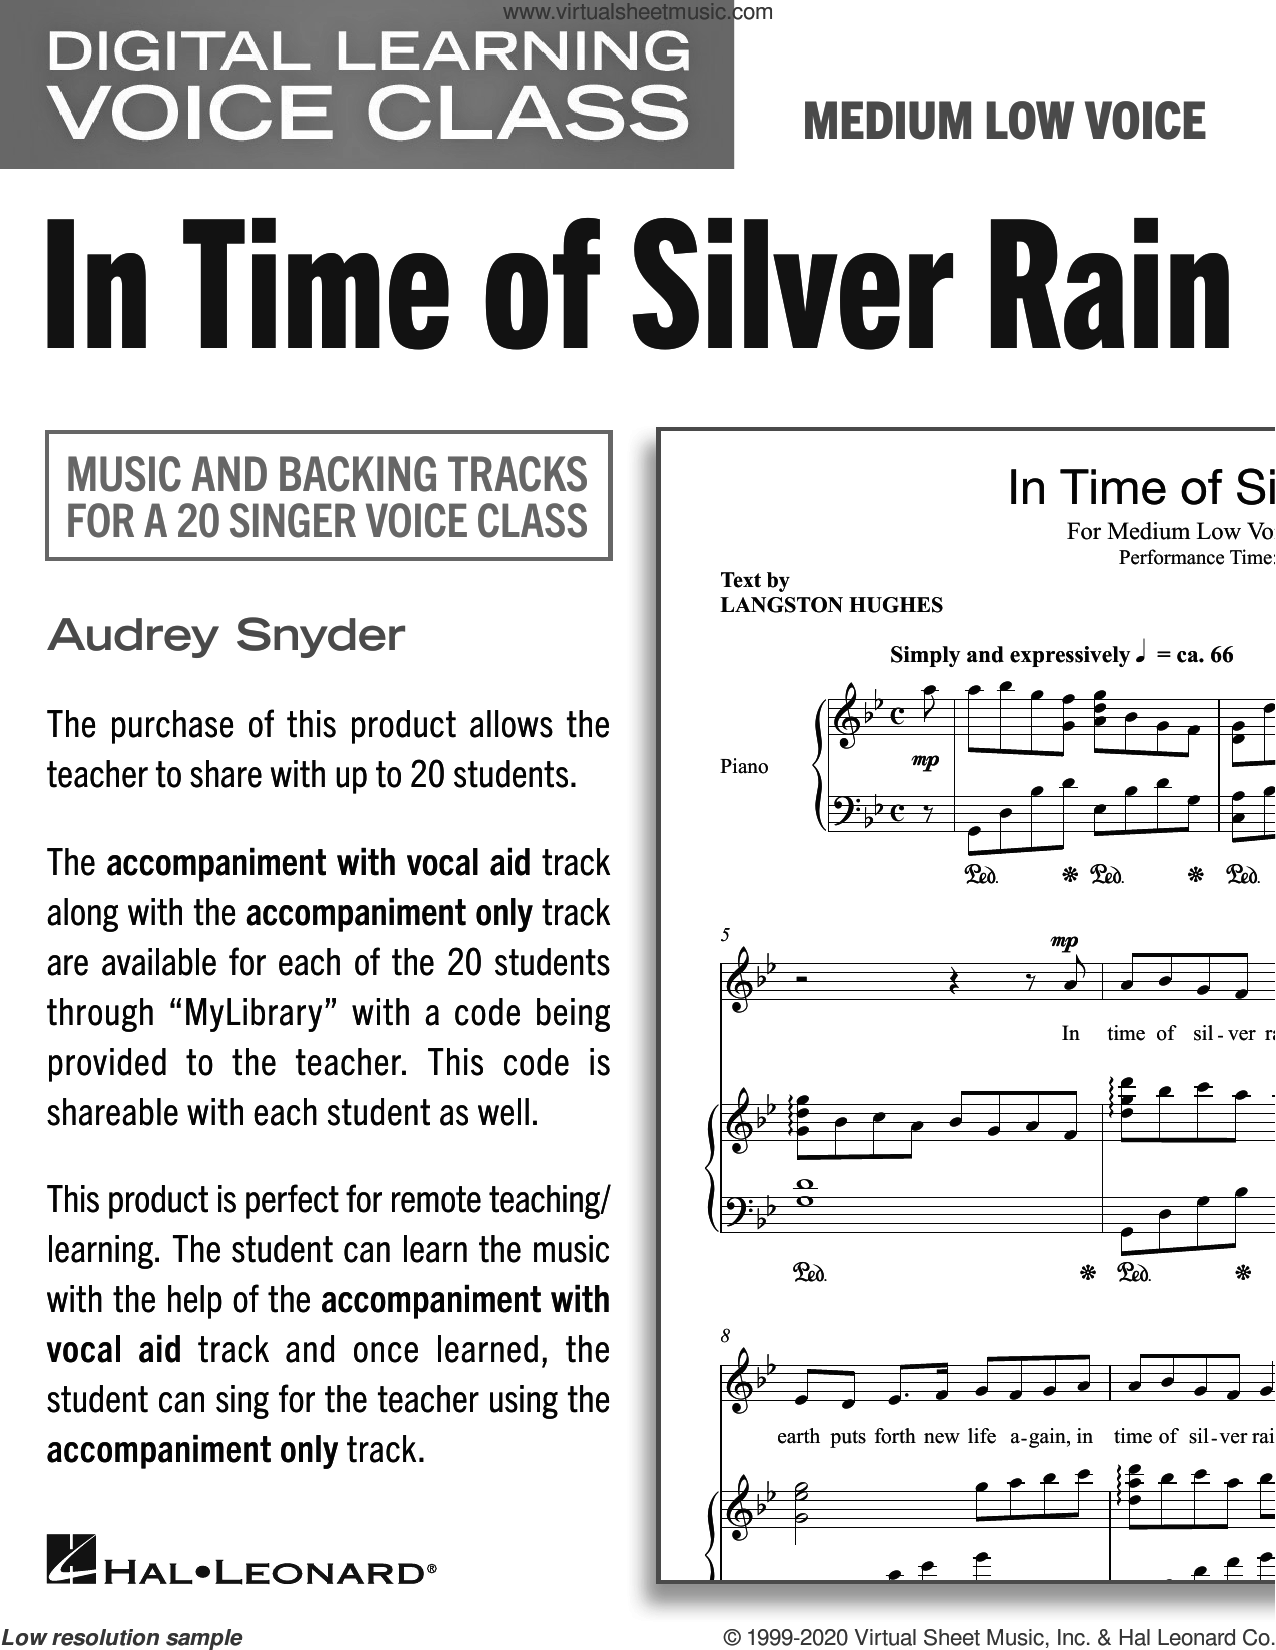 In Time Of Silver Rain (Medium Low Voice) (includes Audio) sheet music for voice and piano (Medium Low Voice) by Audrey Snyder and Langston Hughes, intermediate skill level